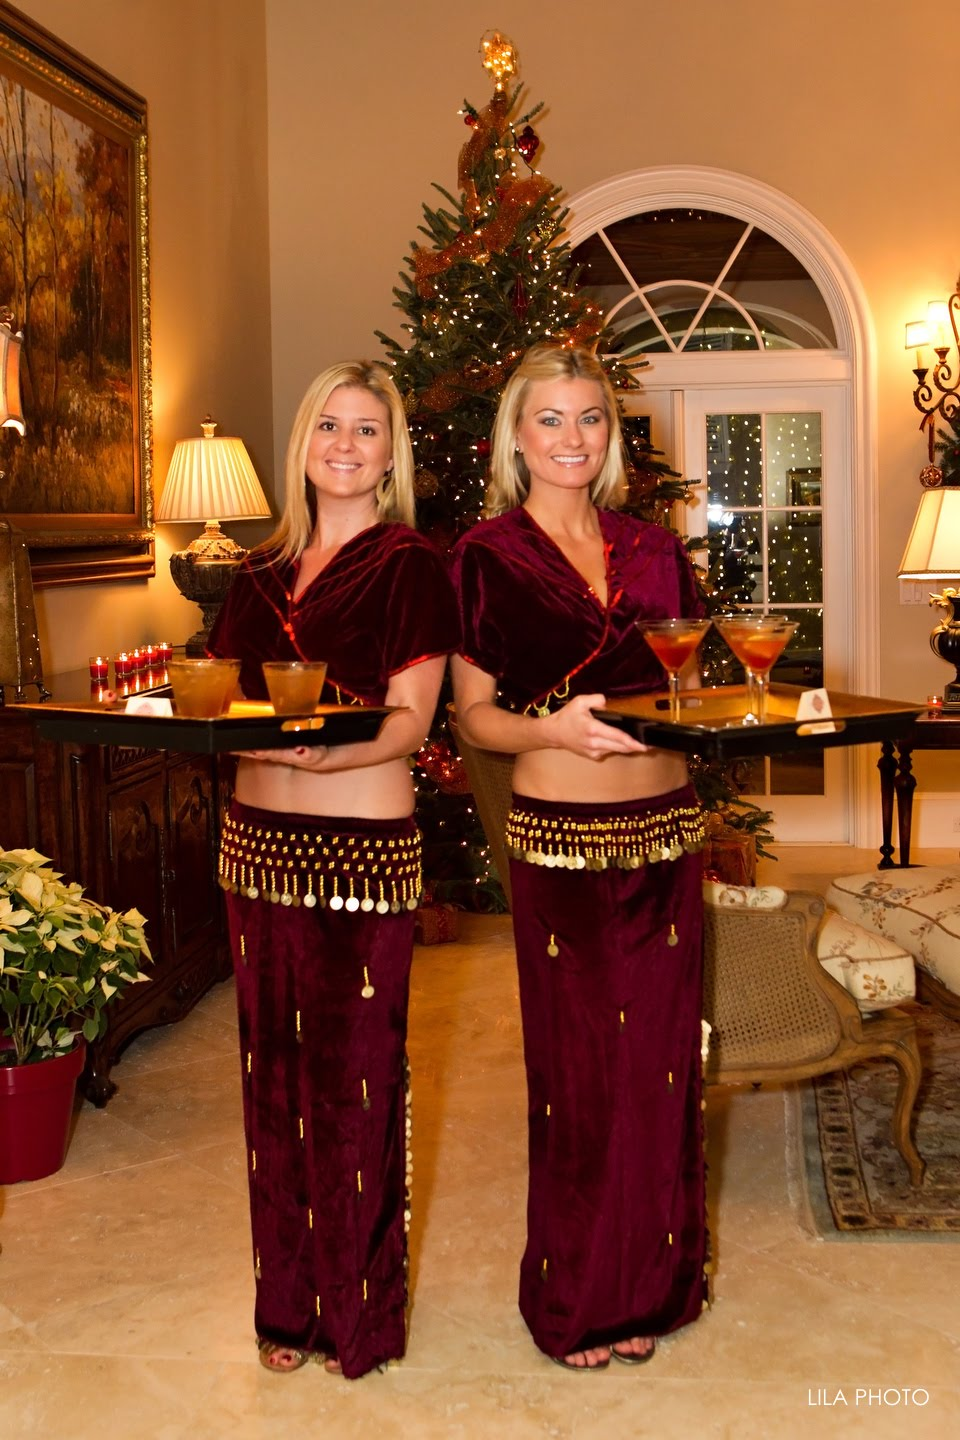 Beth Beattie Branding, PR and Events: Merry Moroccan Christmas Party